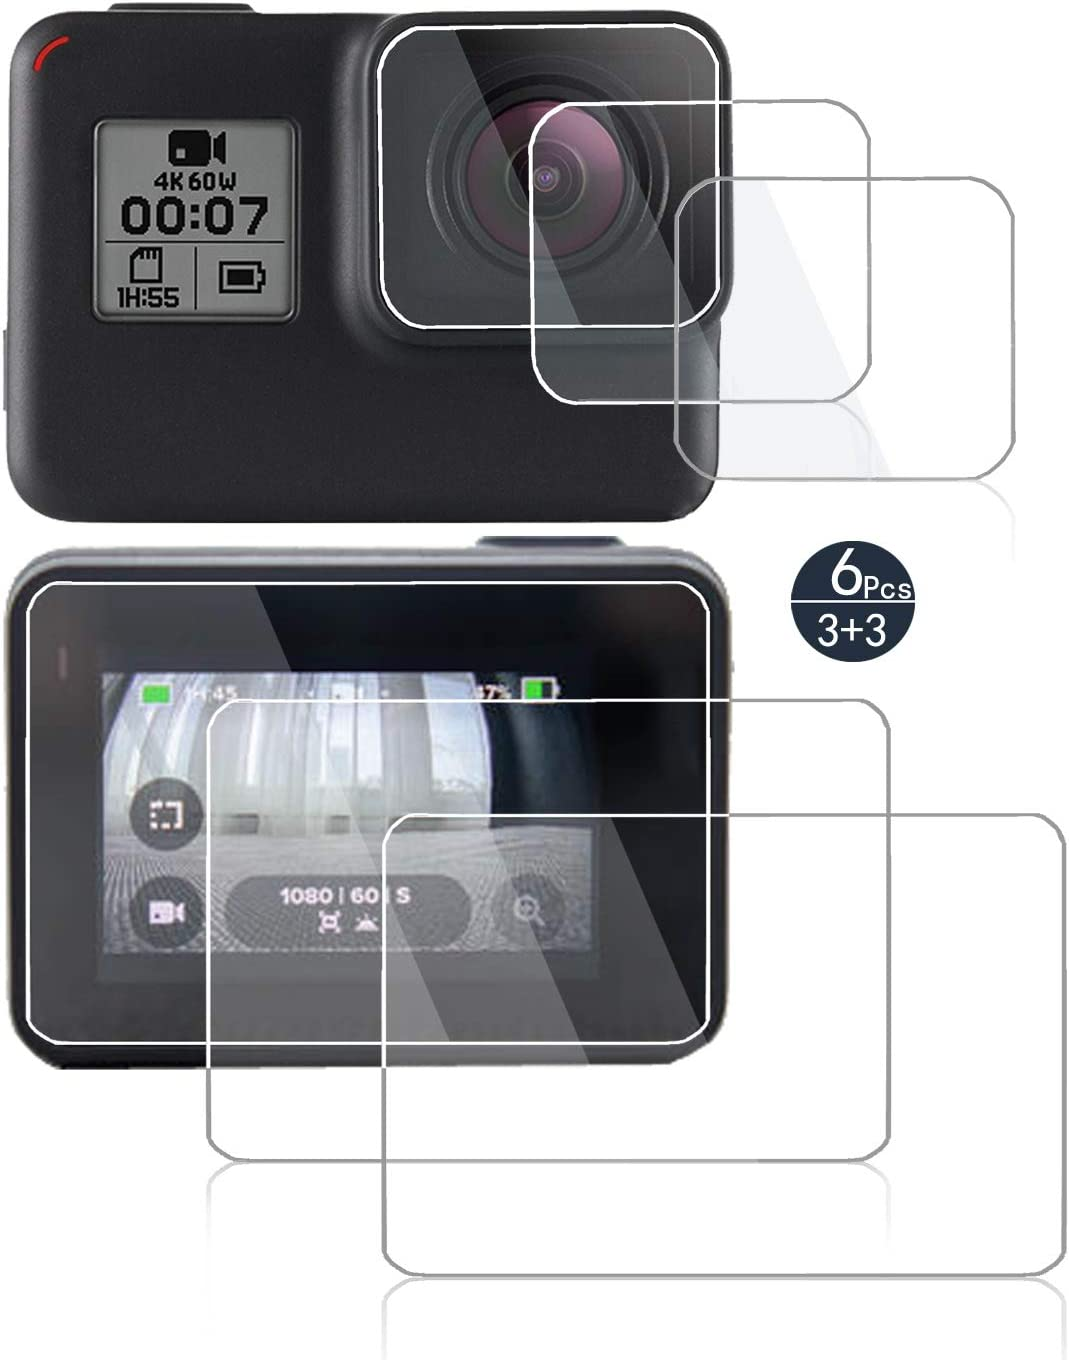 2018 Hero HD Glass Screen Protector Compatible for GoPro Hero 7 Black Hero 6 Hero 5 Action Camera,debous Waterproof Tempered Glass Clera Hard Protective Film Shield Cover Lcd+Lens screen 6pcs only